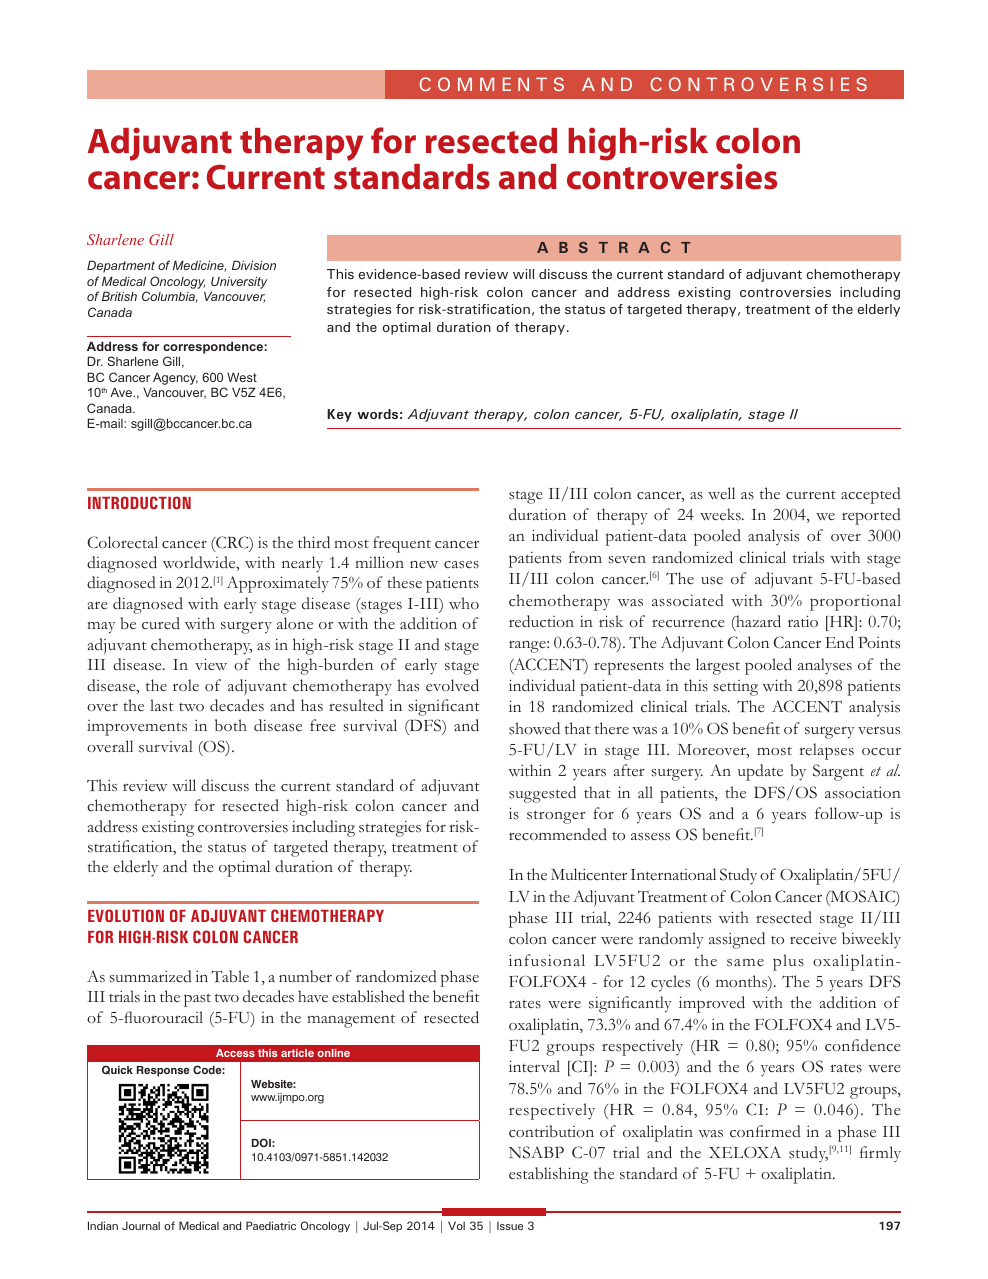 Adjuvant Therapy For Resected High Risk Colon Cancer Current Standards And Controversies Topic Of Research Paper In Clinical Medicine Download Scholarly Article Pdf And Read For Free On Cyberleninka Open Science Hub